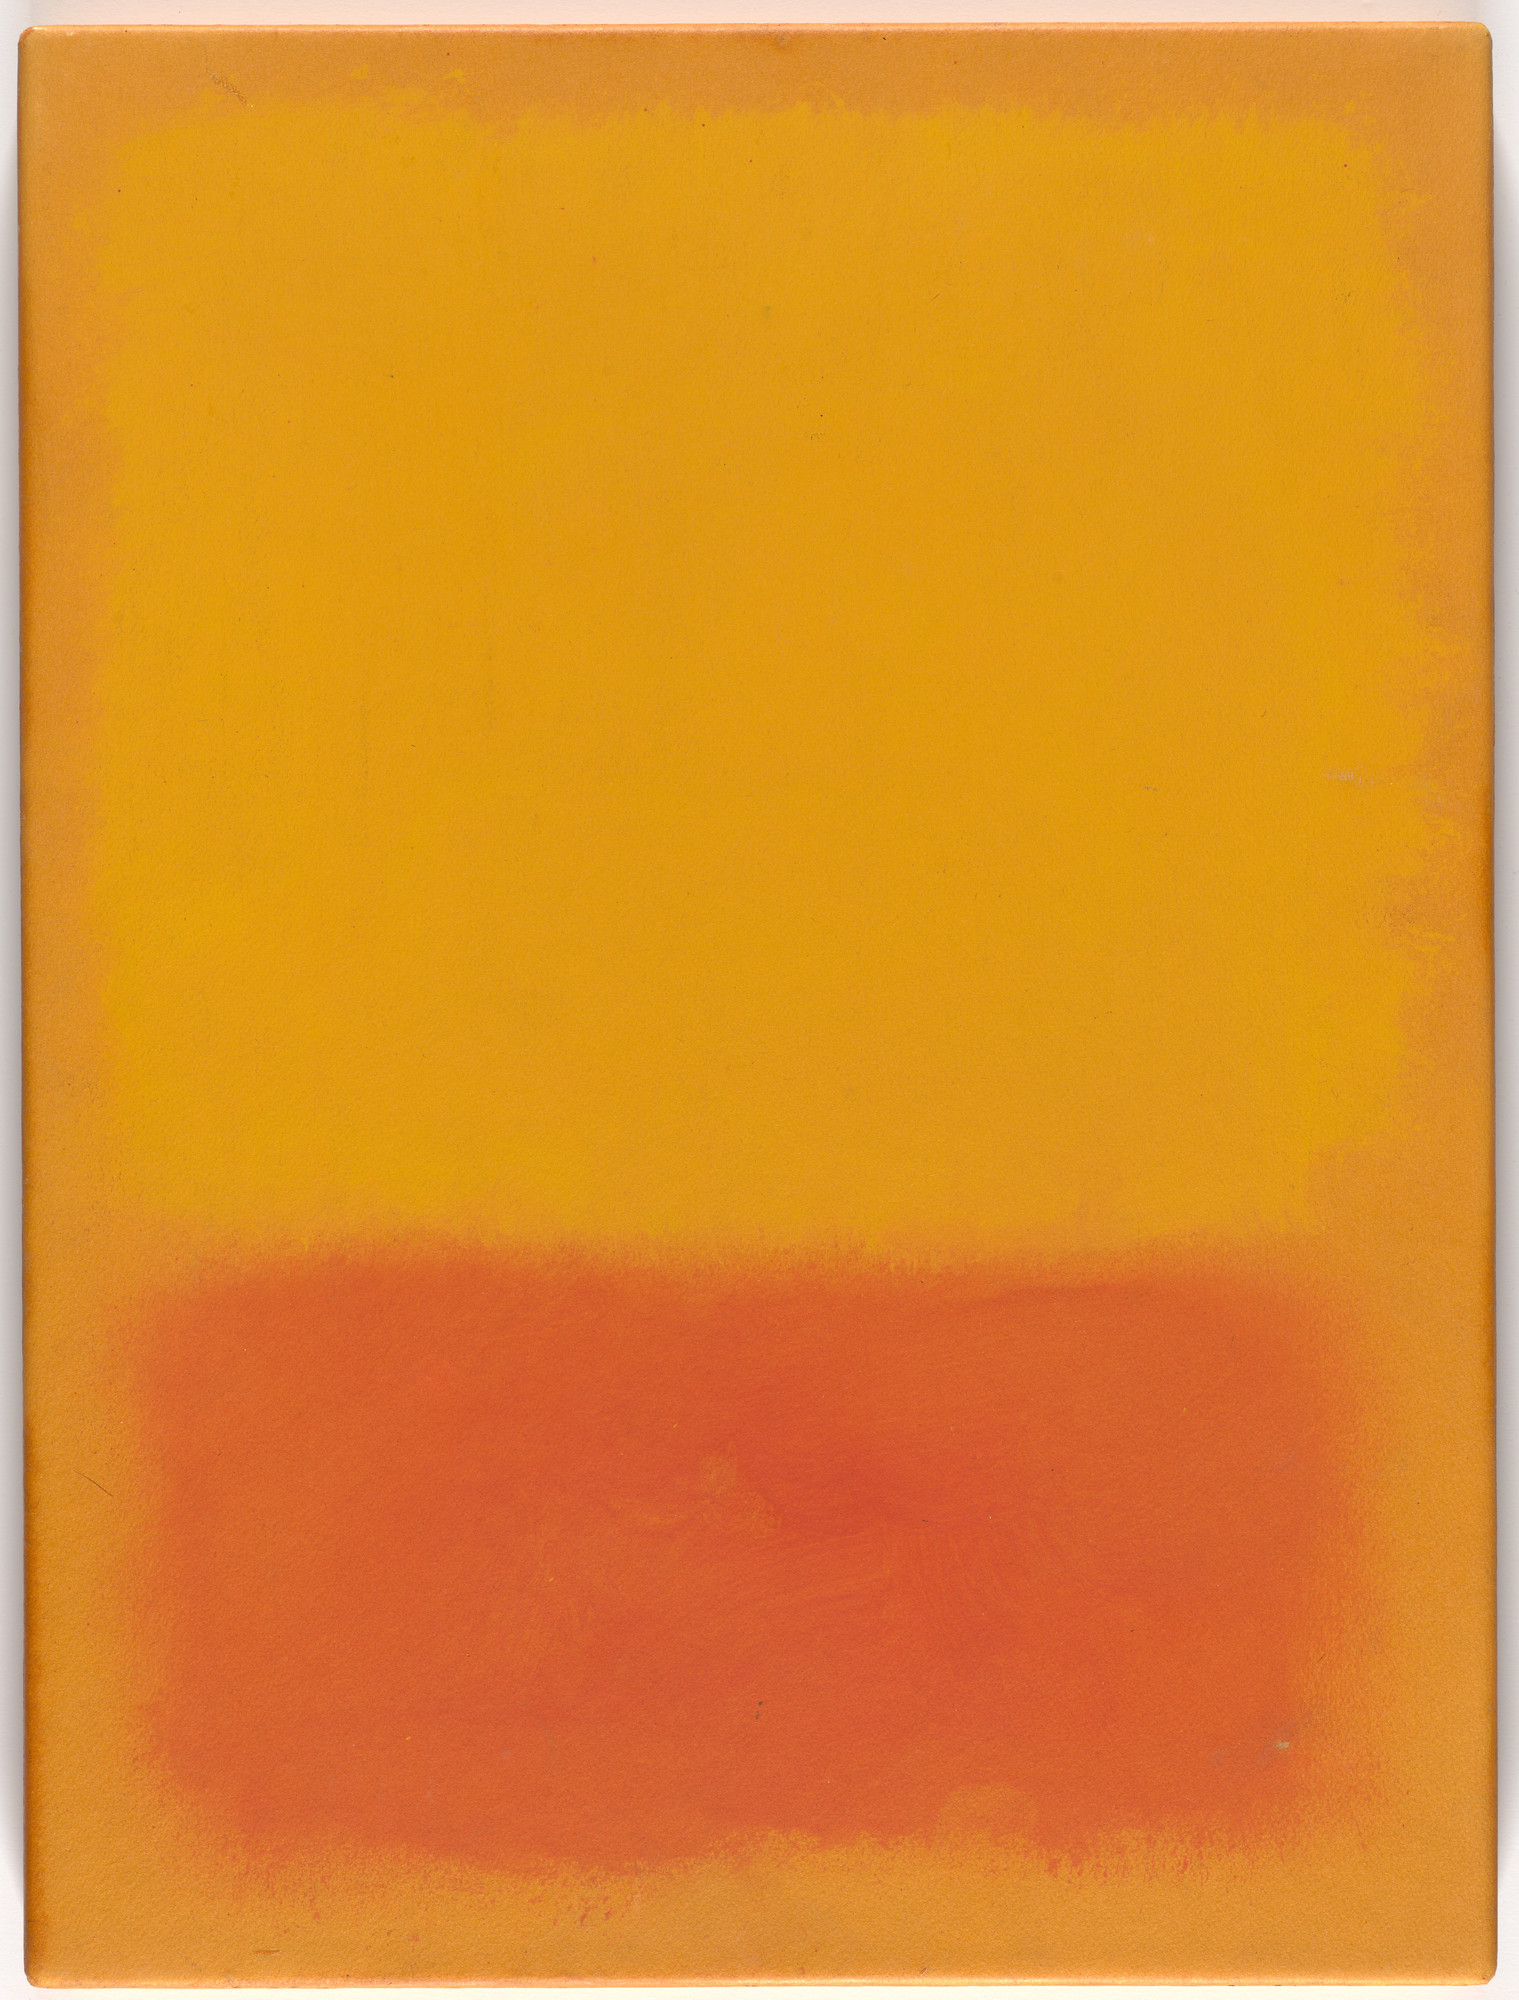 Mark Rothko. Untitled. (1968)